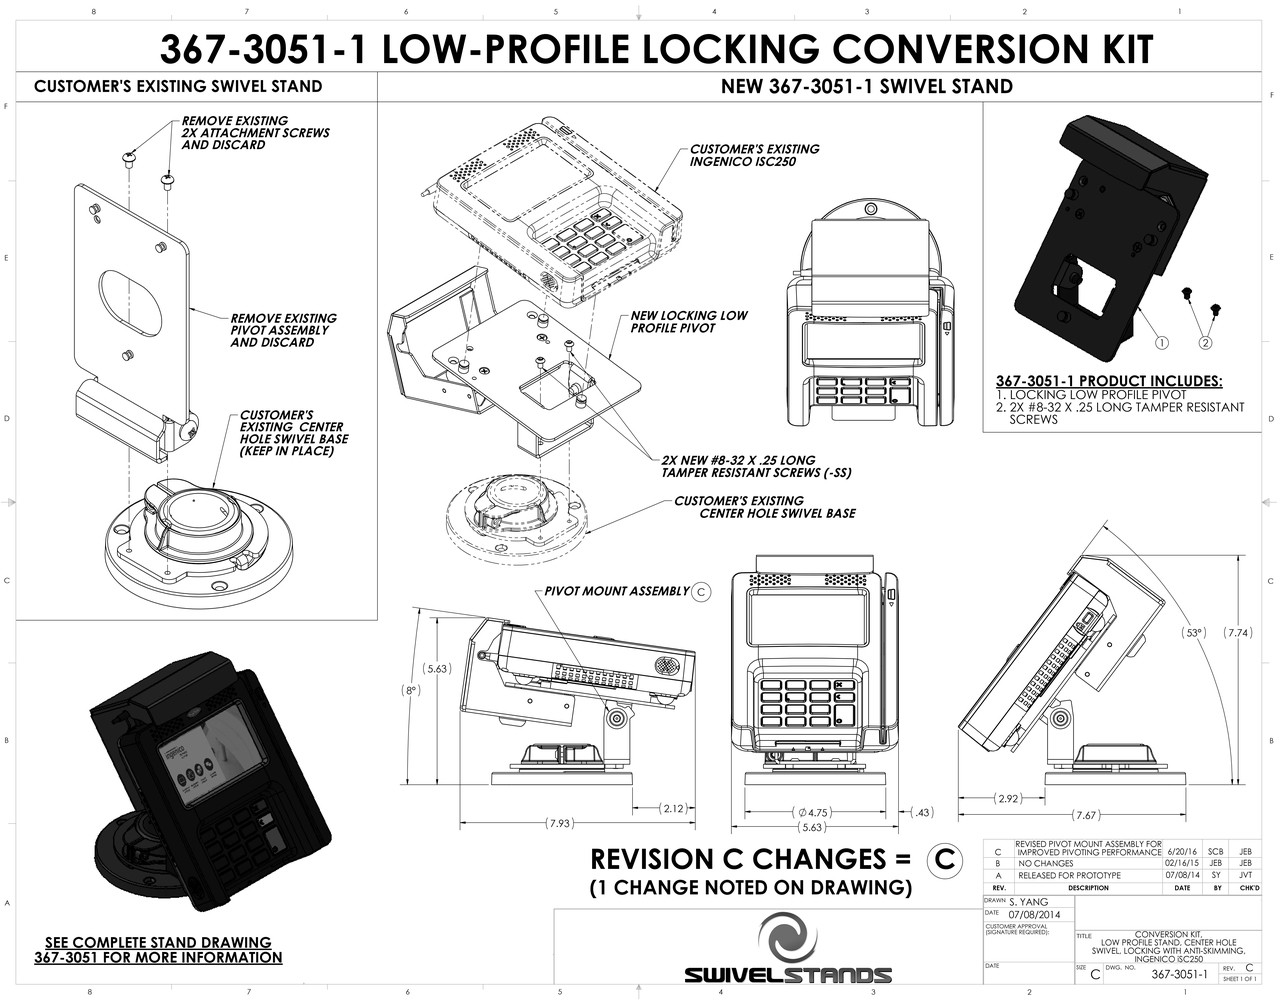 Ingenico iSC250 Conversion Kit Locking Low Profile by Swivel Stands